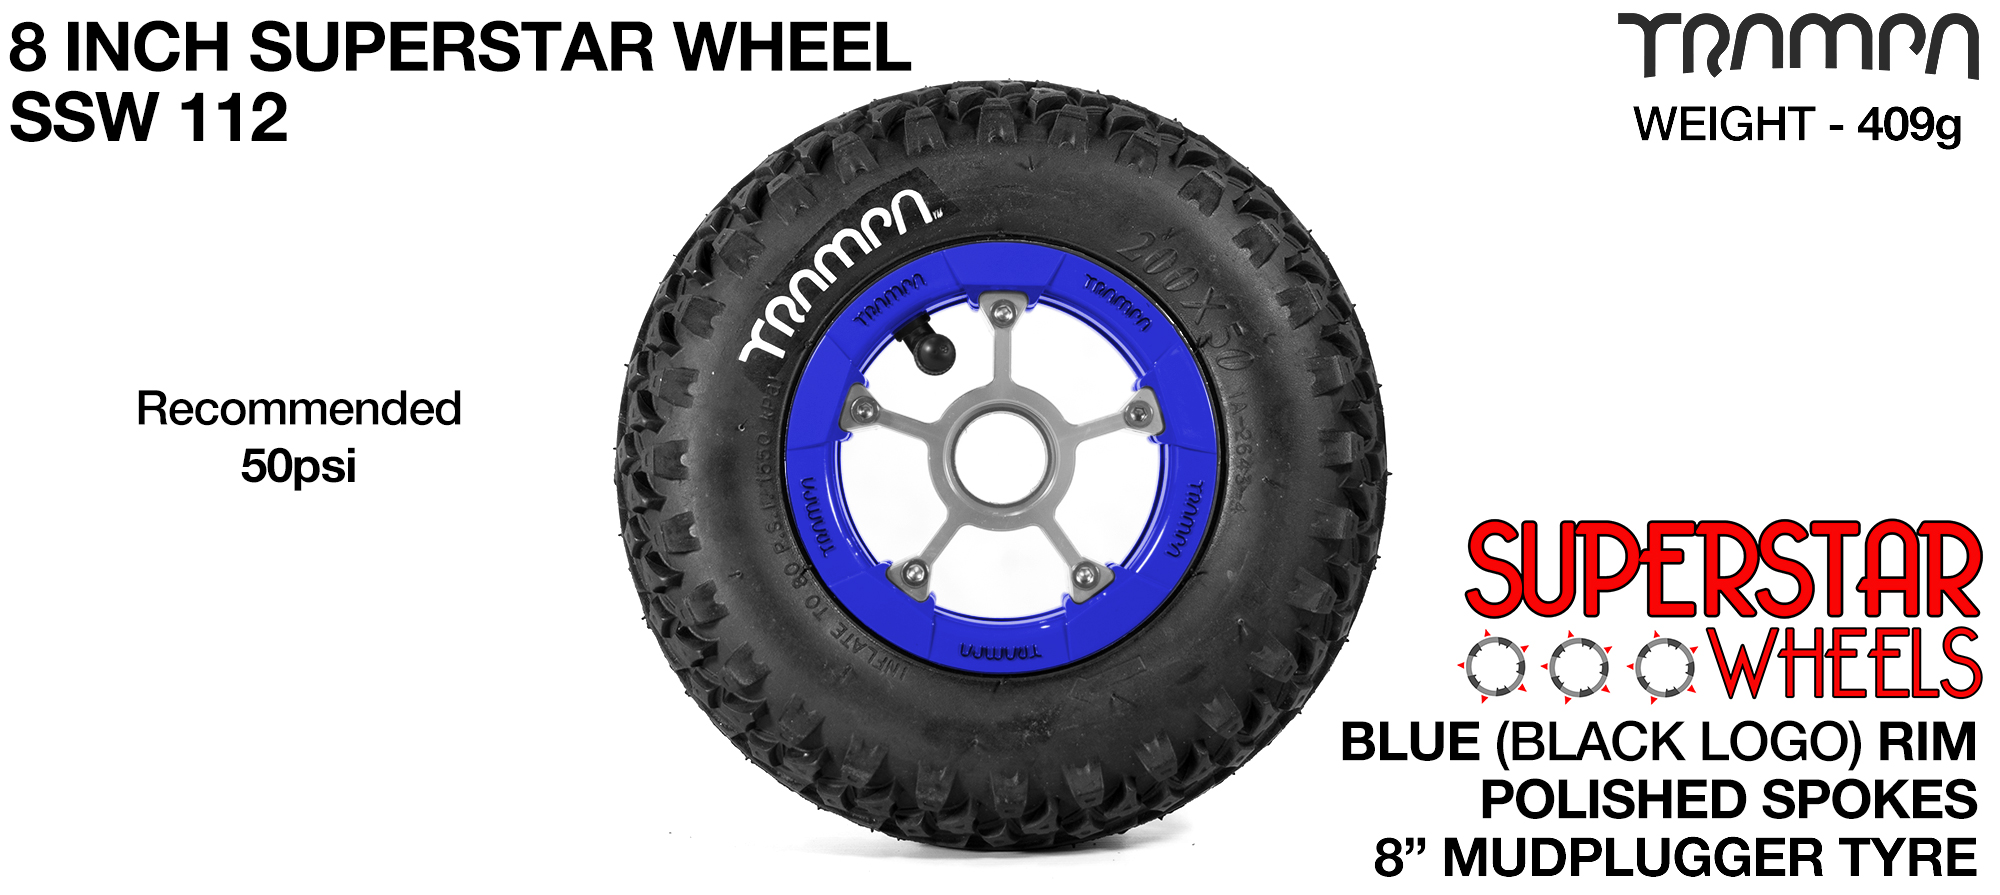 Superstar 8 inch wheels -  Blue & Black Logo Rim Silver Anodised spokes & Black MudPlugger 8 inch Tyre